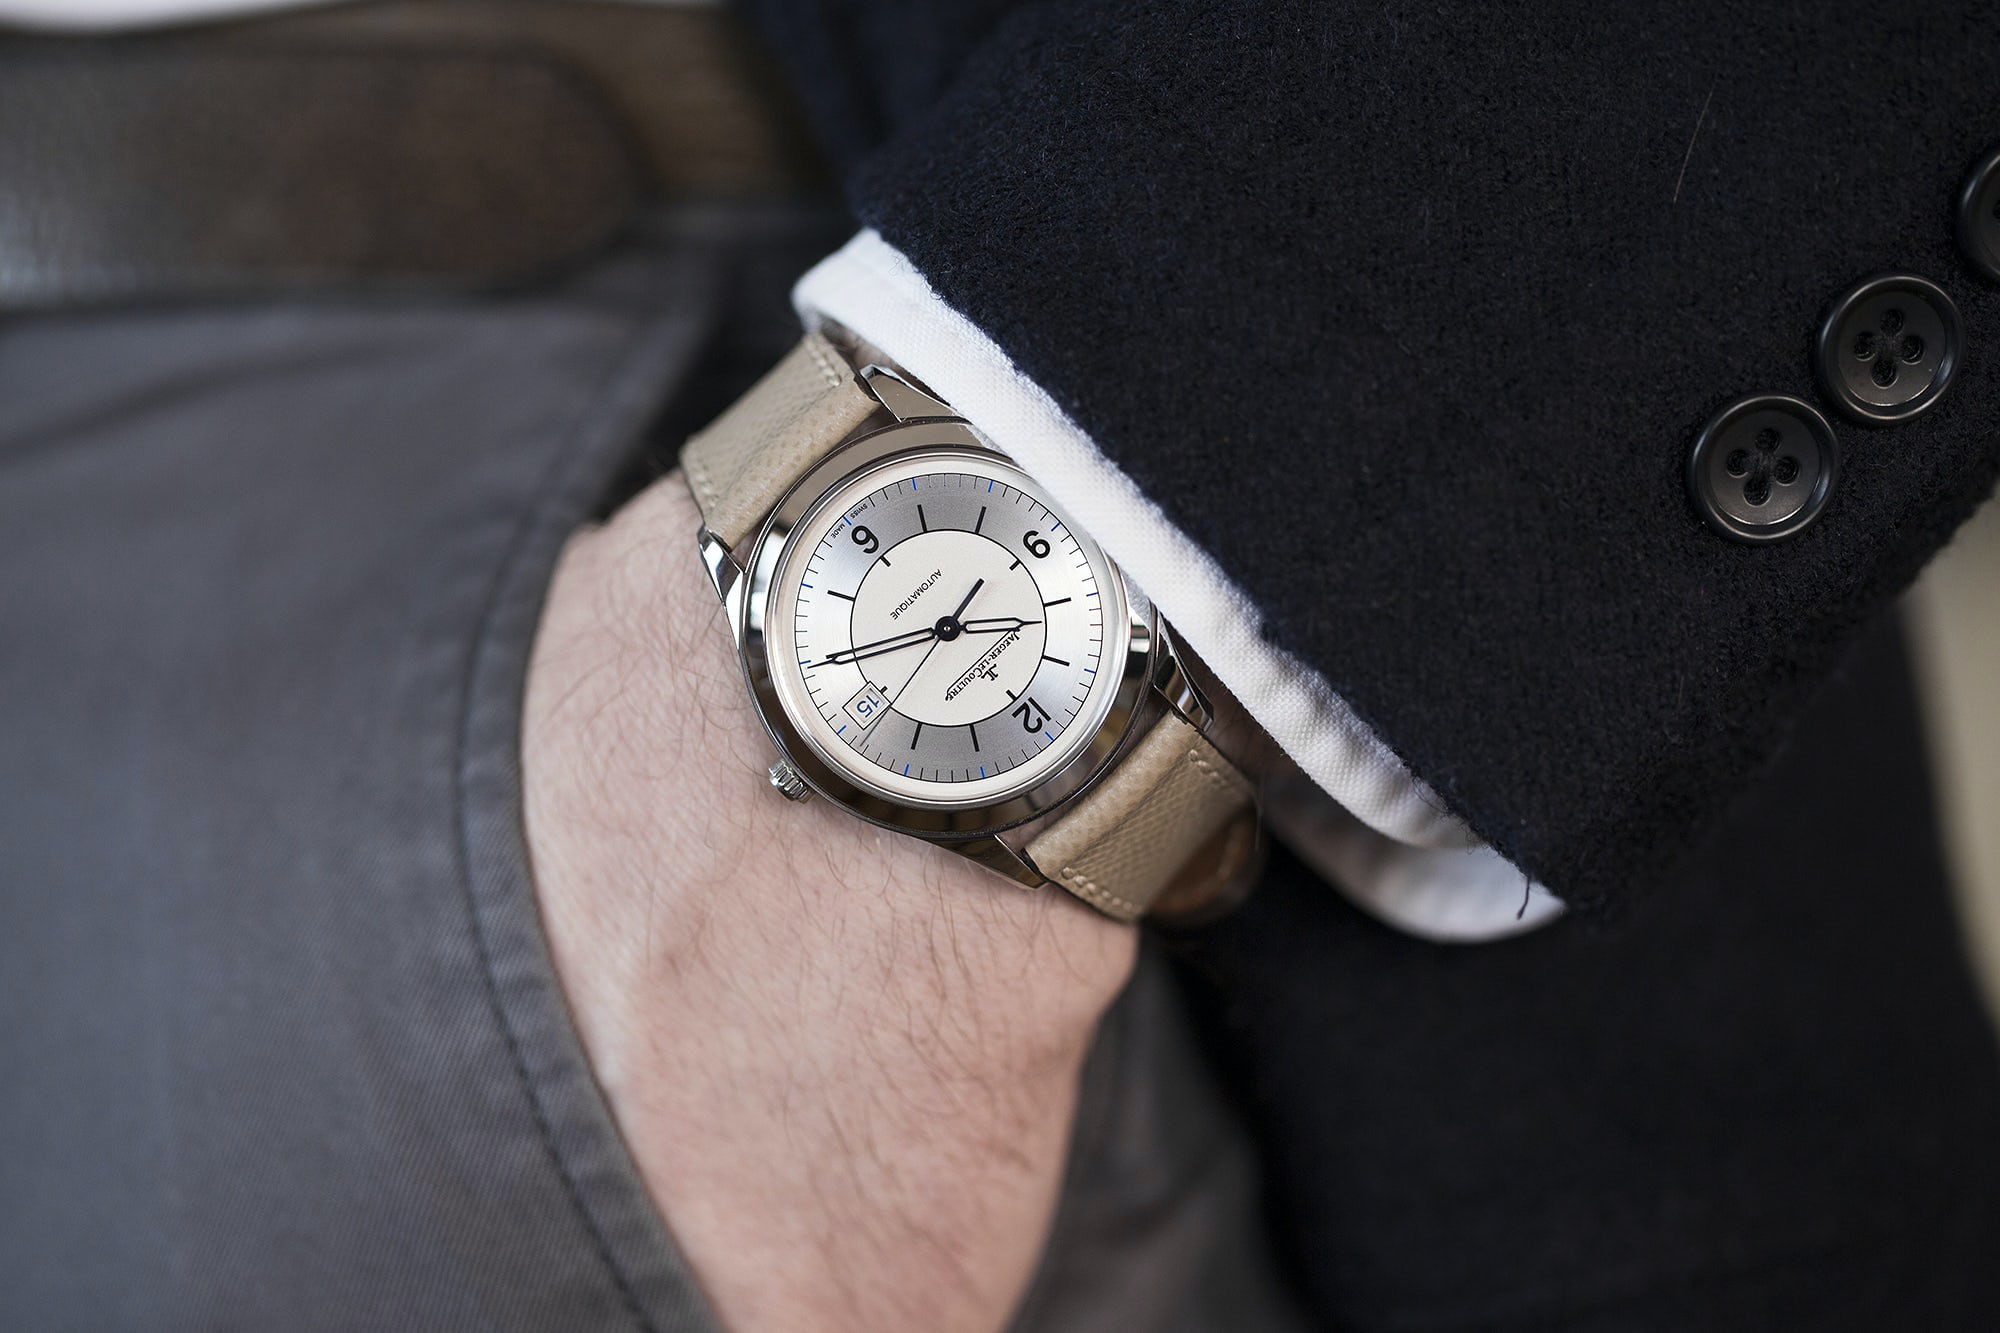 Year In Review: The Top 25 Most Popular HODINKEE Posts Of 2017 Year In Review: The Top 25 Most Popular HODINKEE Posts Of 2017 jlc